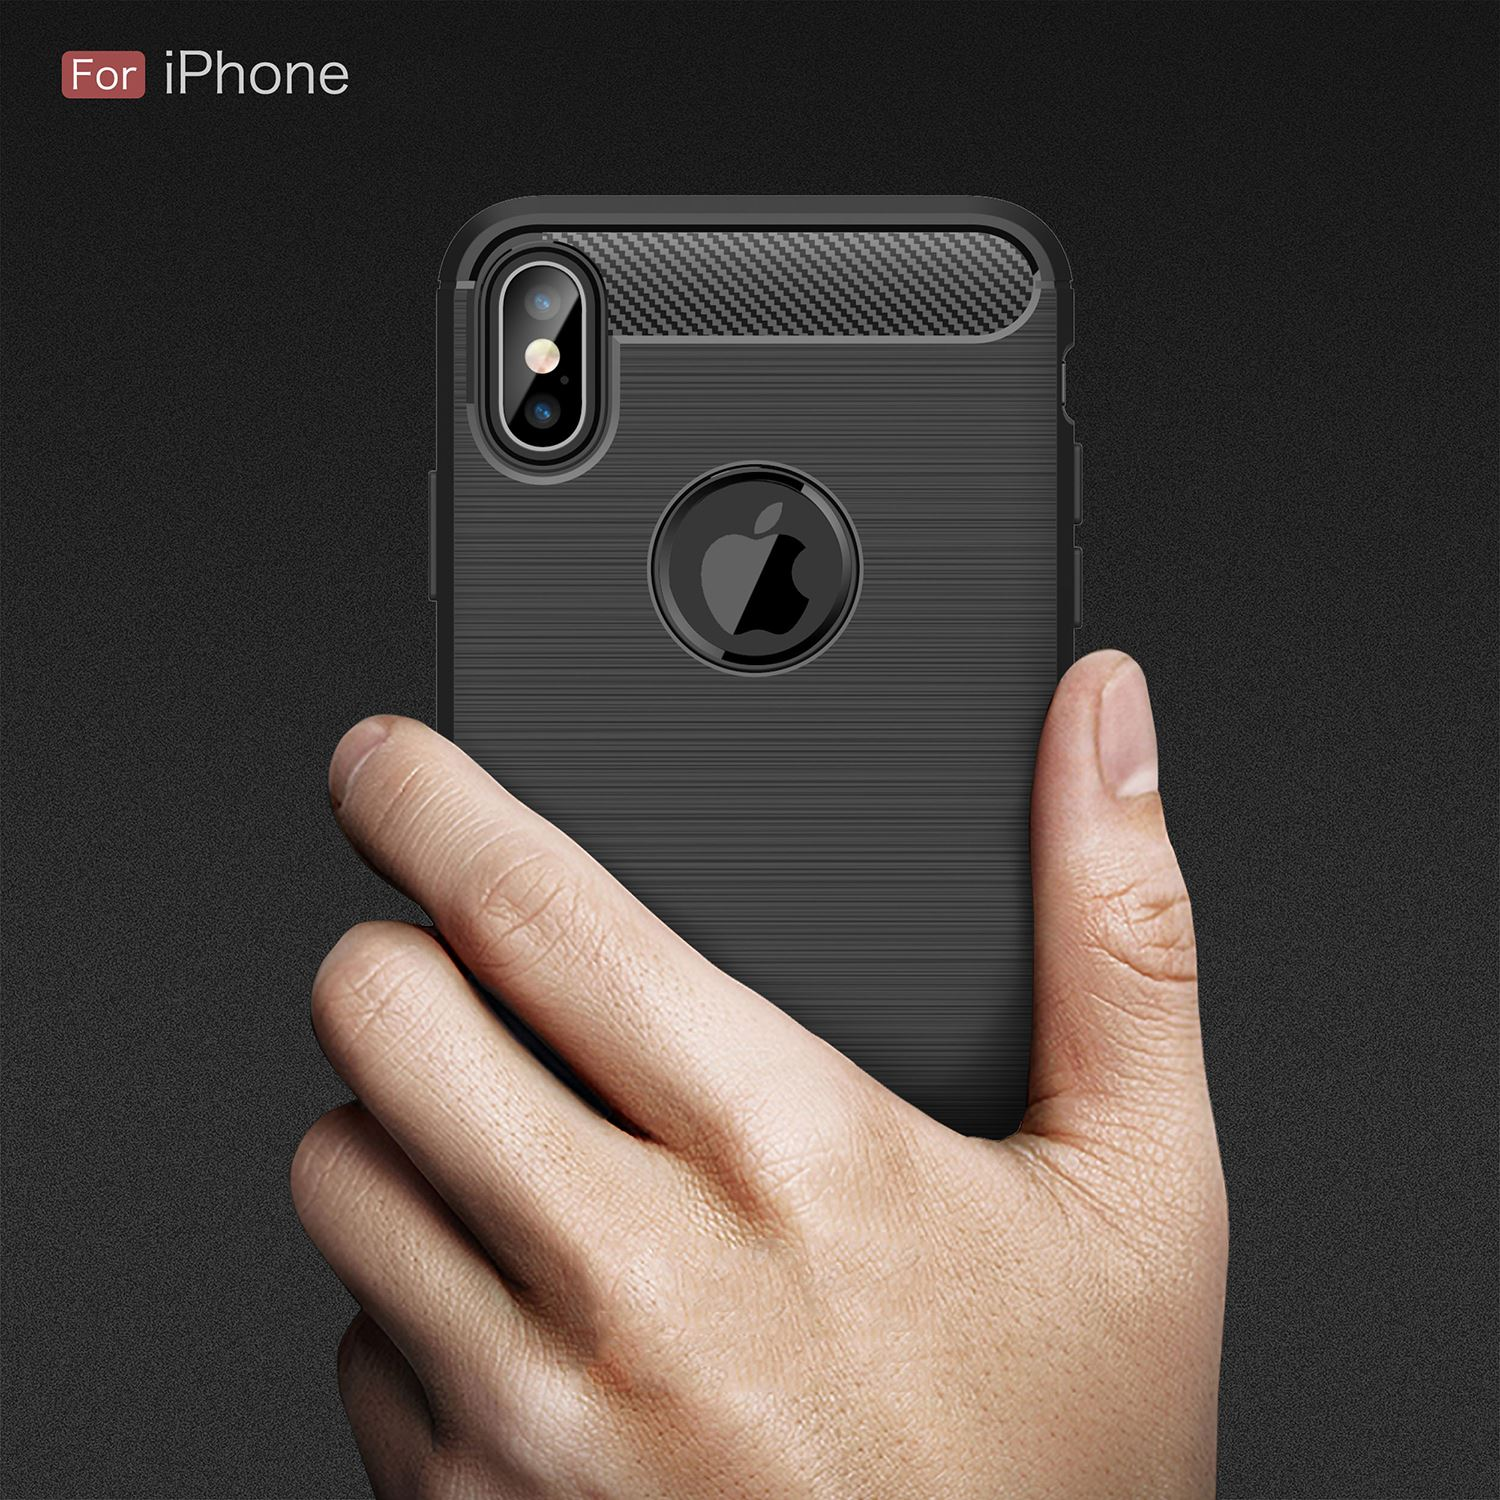 miniature 16 - For Apple iPhone XR Xs Max X 8 7 Plus 6 5 Se 2020 Case Cover New Phone Proof